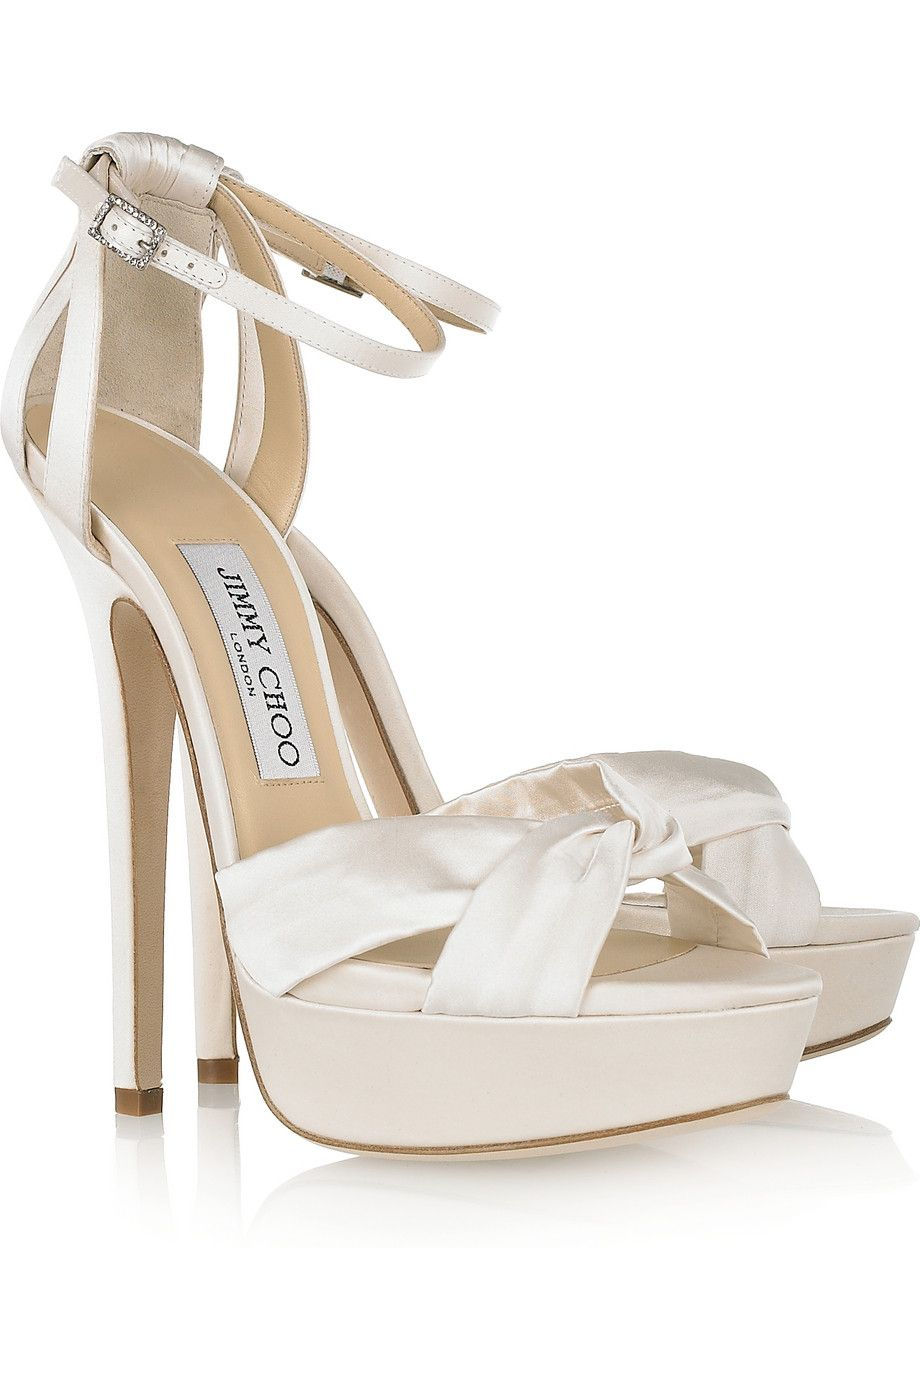 7b5387afc3d4 Jimmy Choo s perfect bridal sandals...yours for just  300